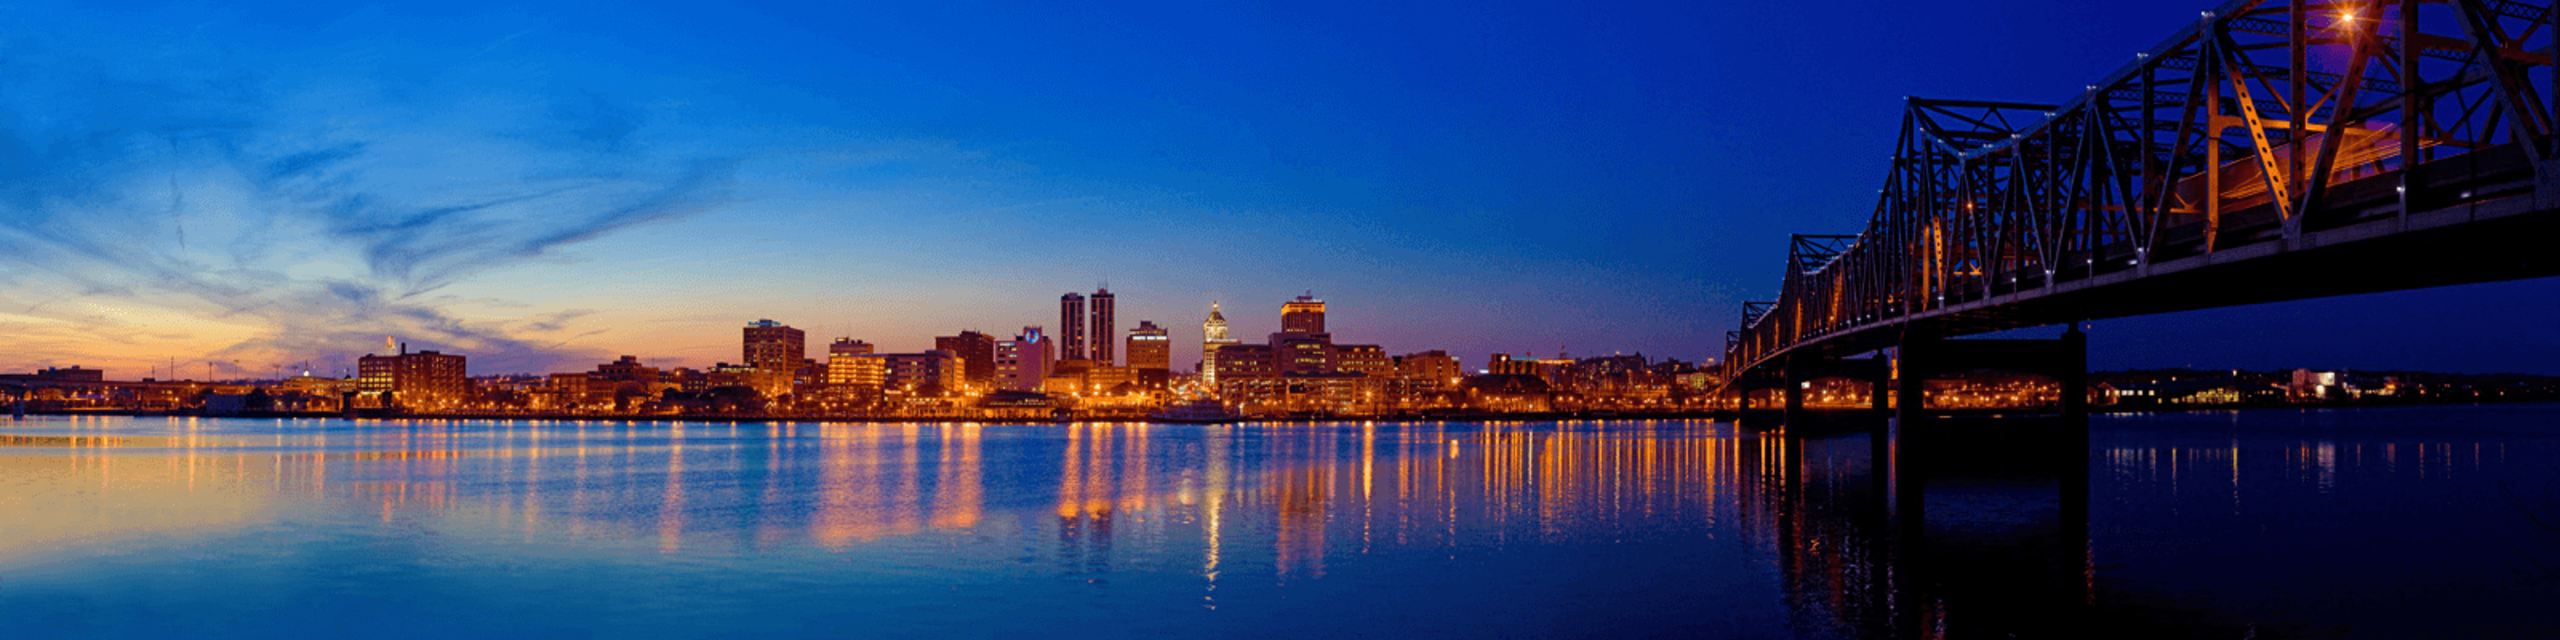 City of Peoria Skyline